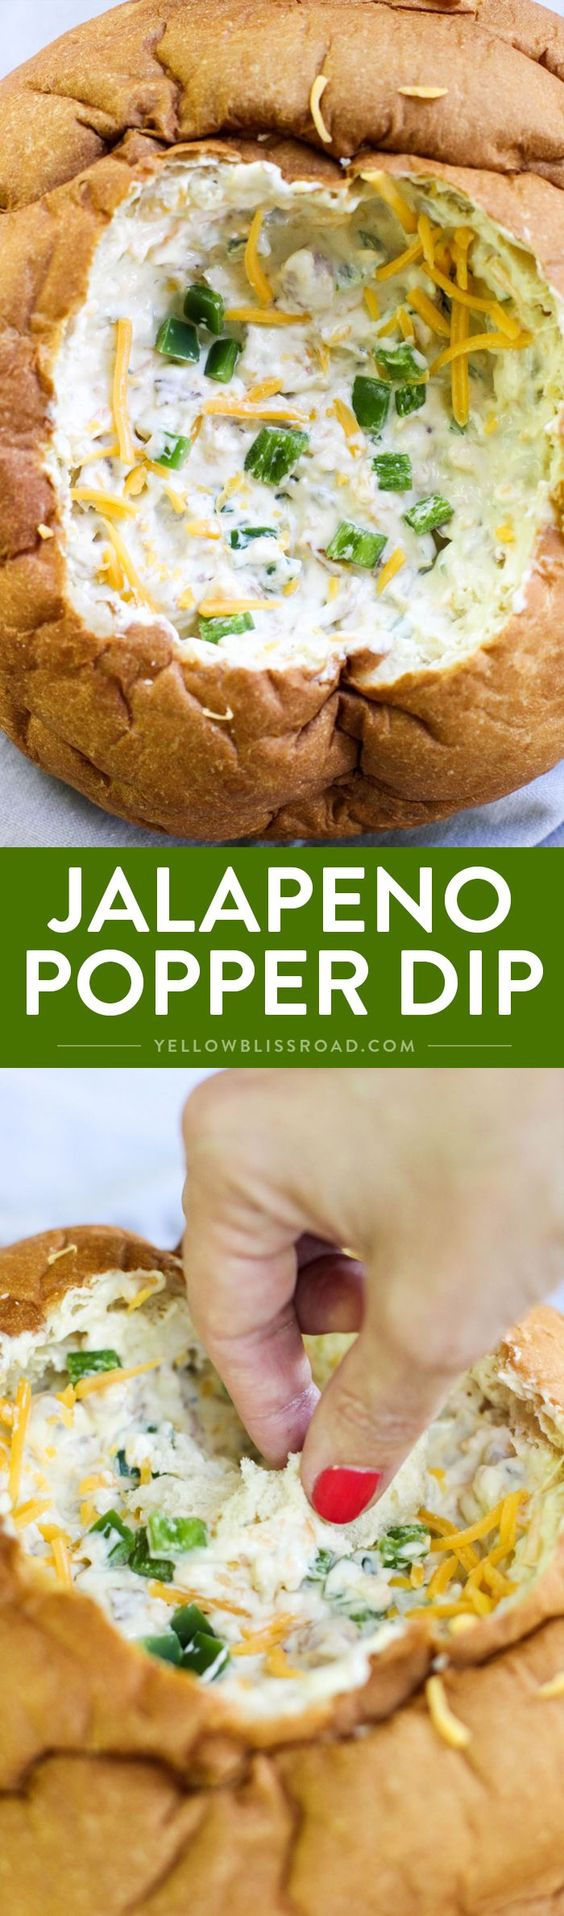 Jalapeno Popper Dip - All the flavor of the classic poppers appetizers in a quick and easy dip! Perfect for parties or tailgaiting.